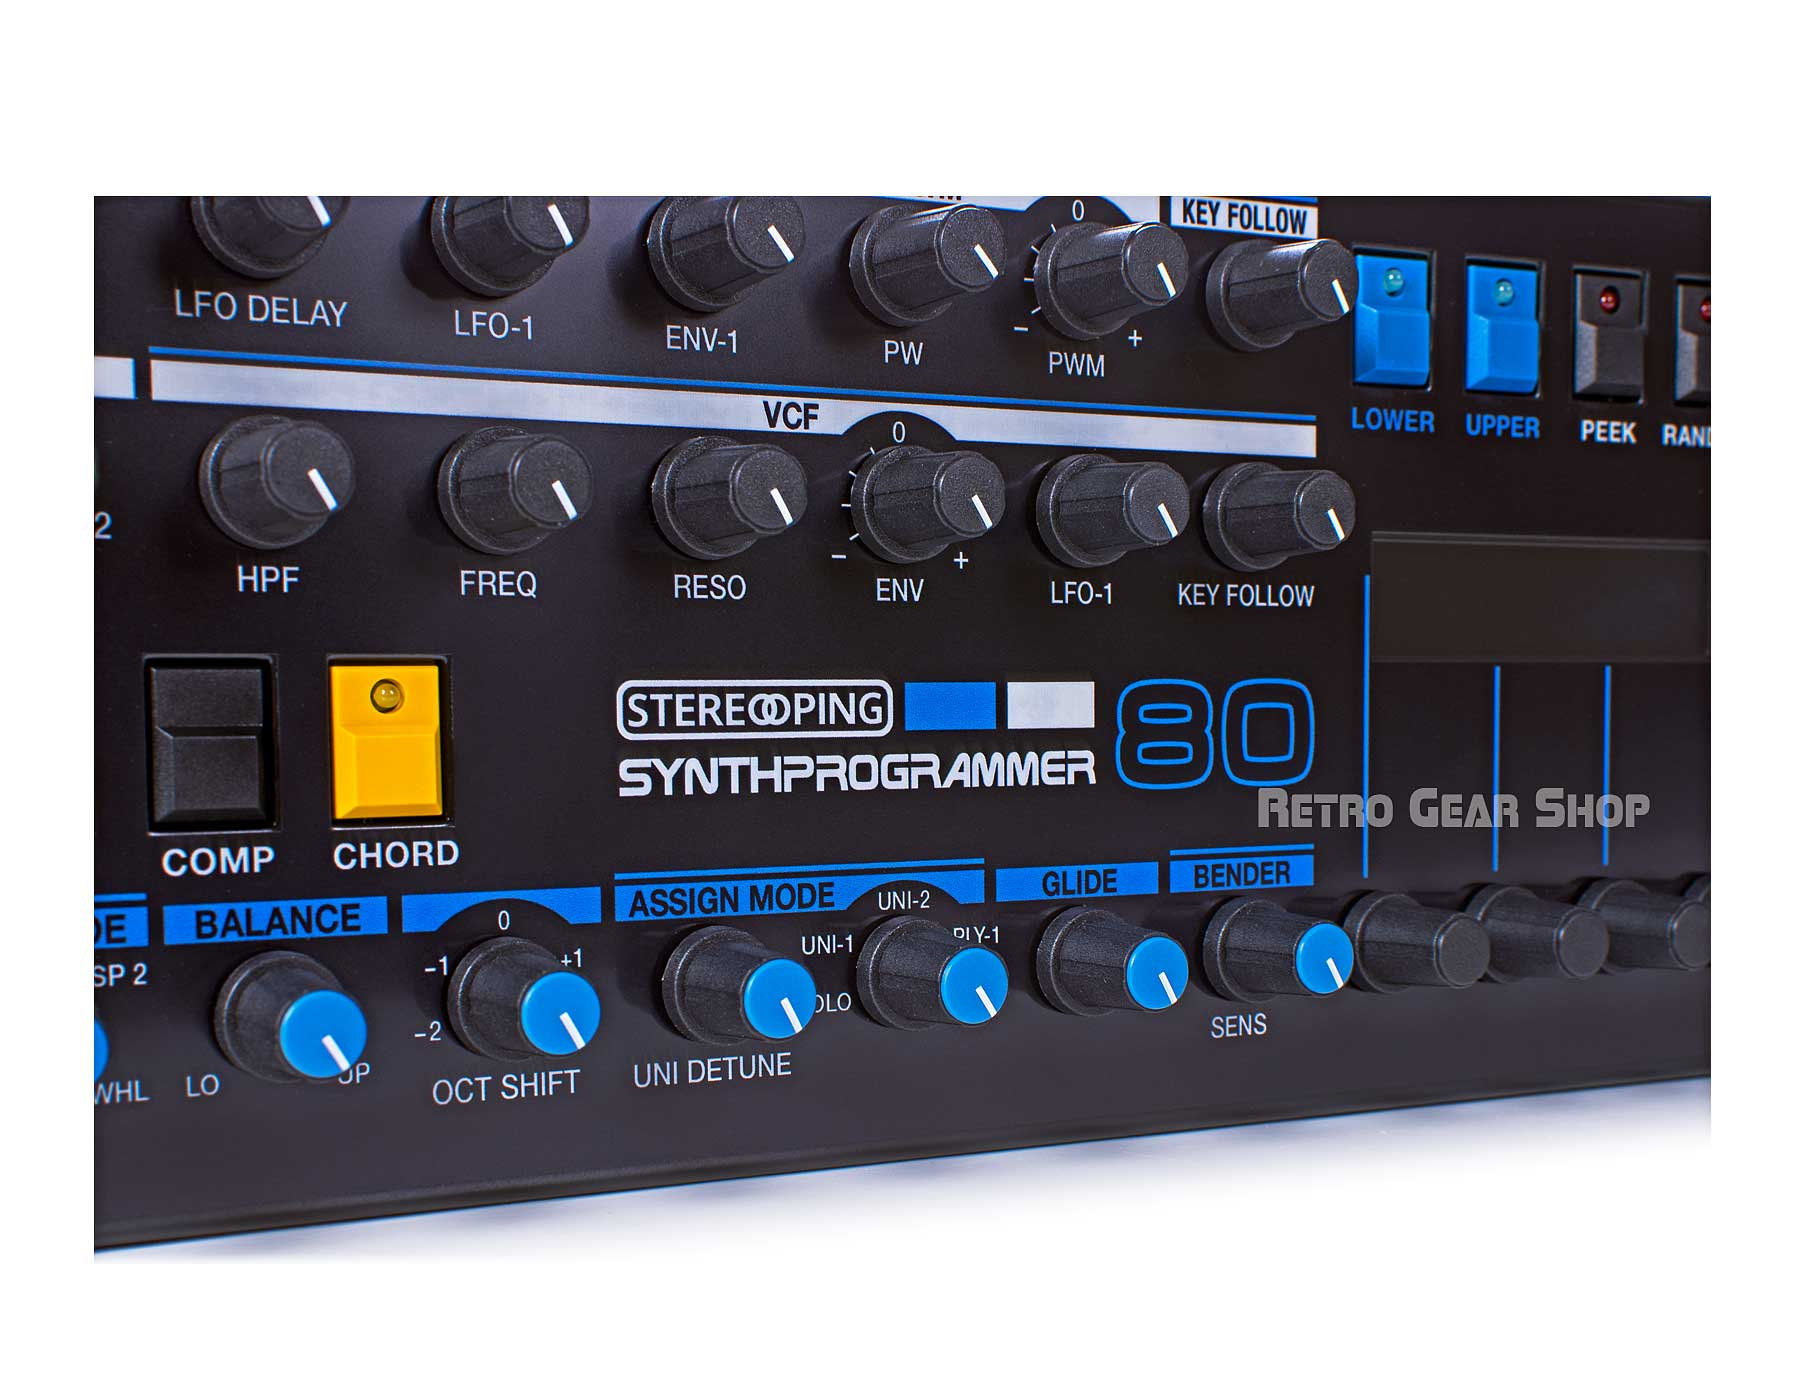 Stereoping Programmer Roland MKS-80 Midi Controller